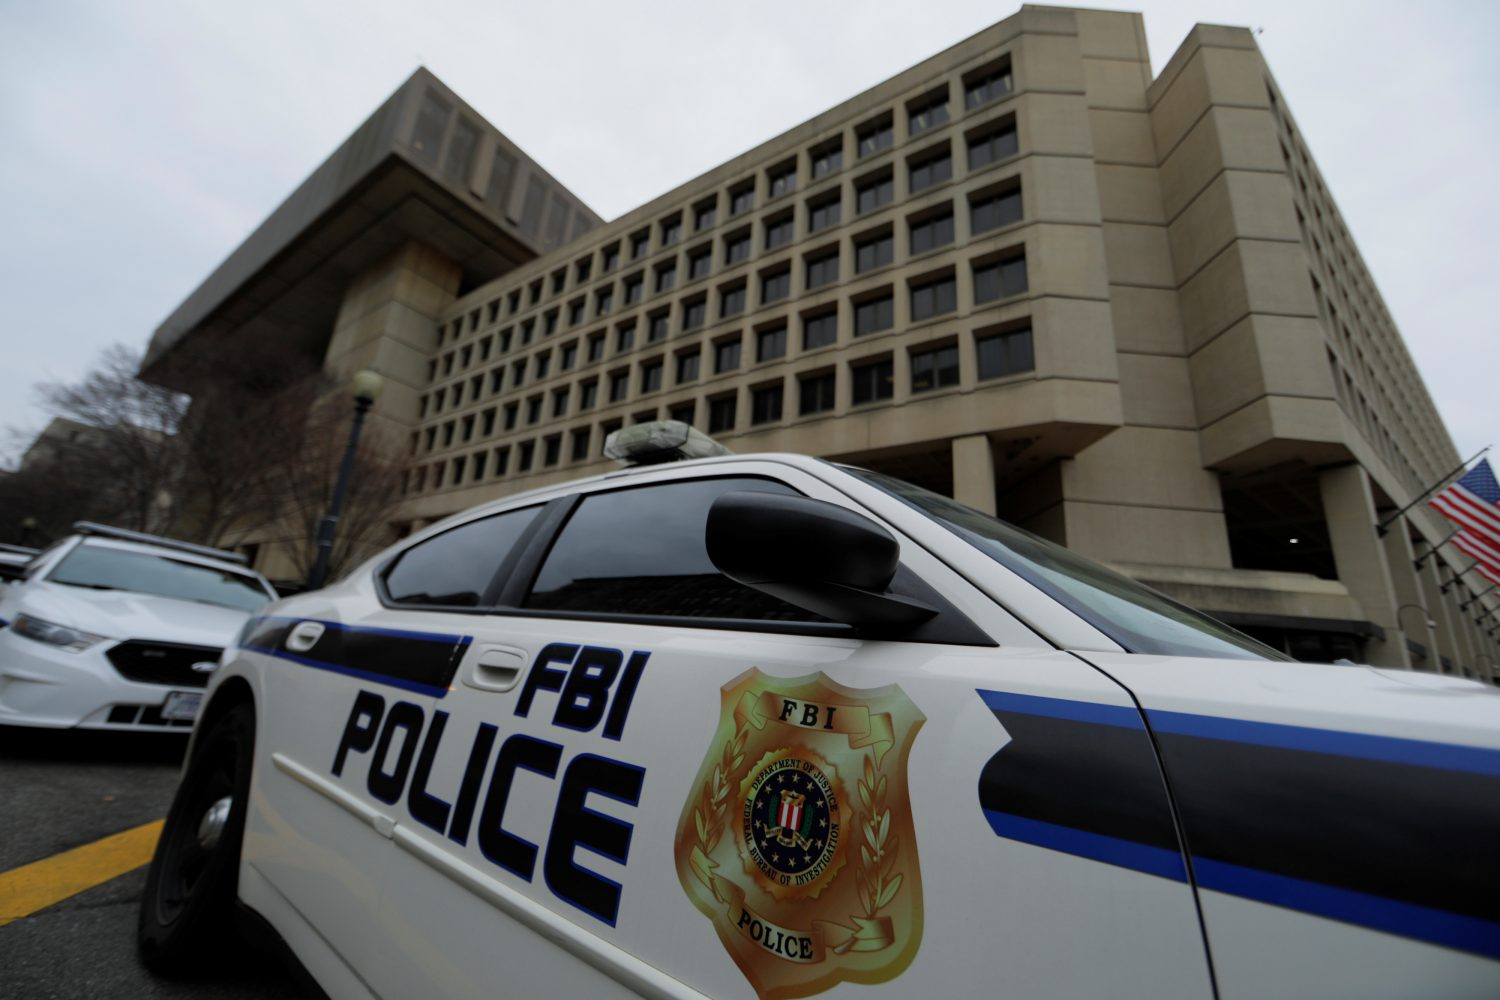 FILE PHOTO: FBI police vehicles sit parked outside of the J. Edgar Hoover Federal Bureau of Investigation Building in Washington, U.S., February 1, 2018. REUTERS/Jim Bourg